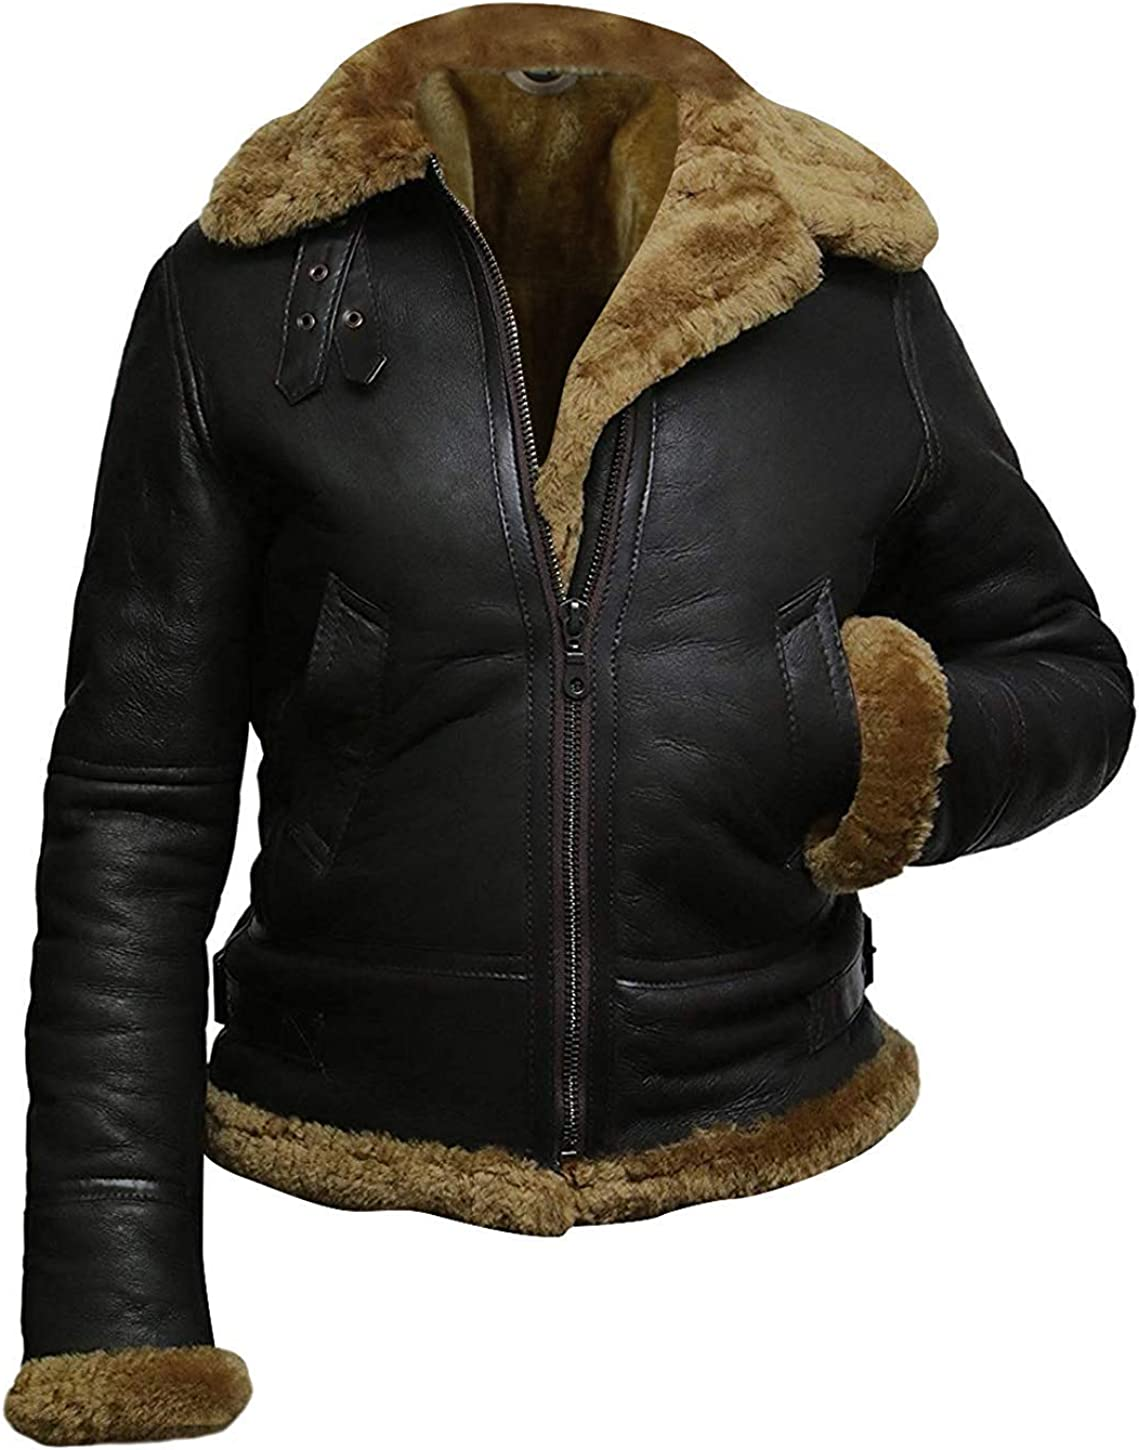 New Women Black B3 Bomber Real Leather Faux Fur Shearling Jacket Hoodie